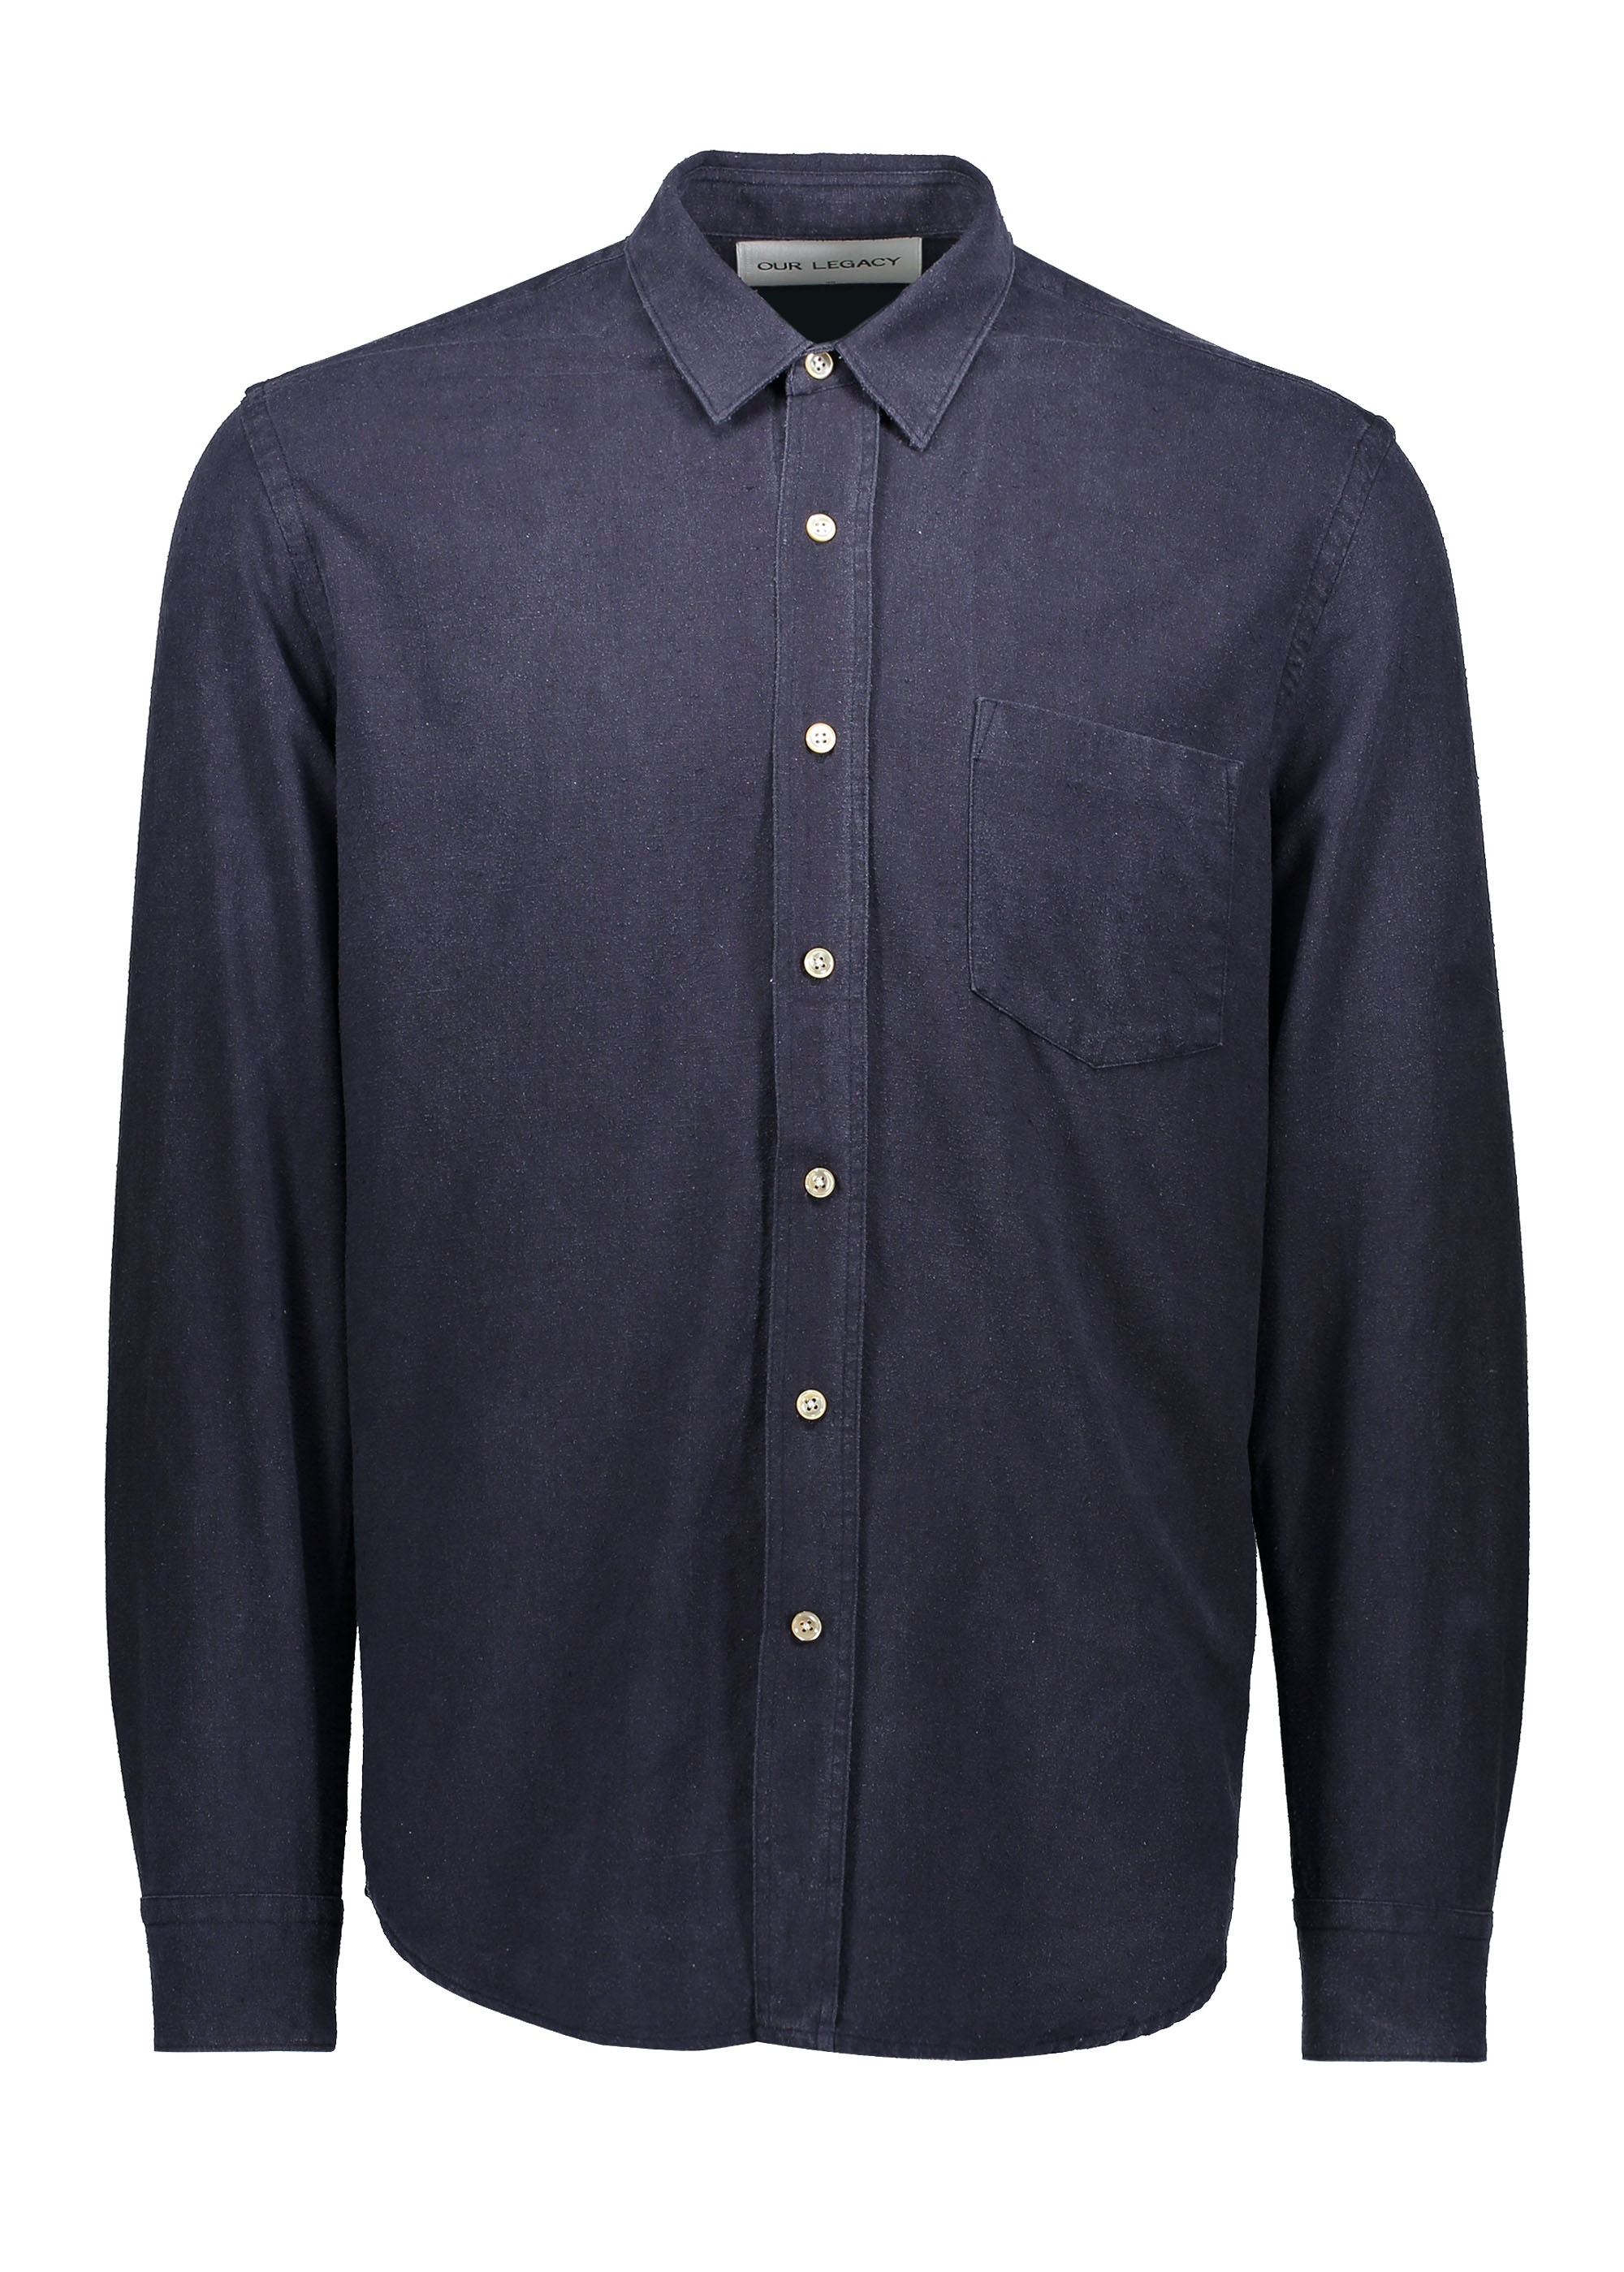 0a0a8564576c08 Our Legacy Classic Shirt - Navy Silk - Triads Mens from Triads UK